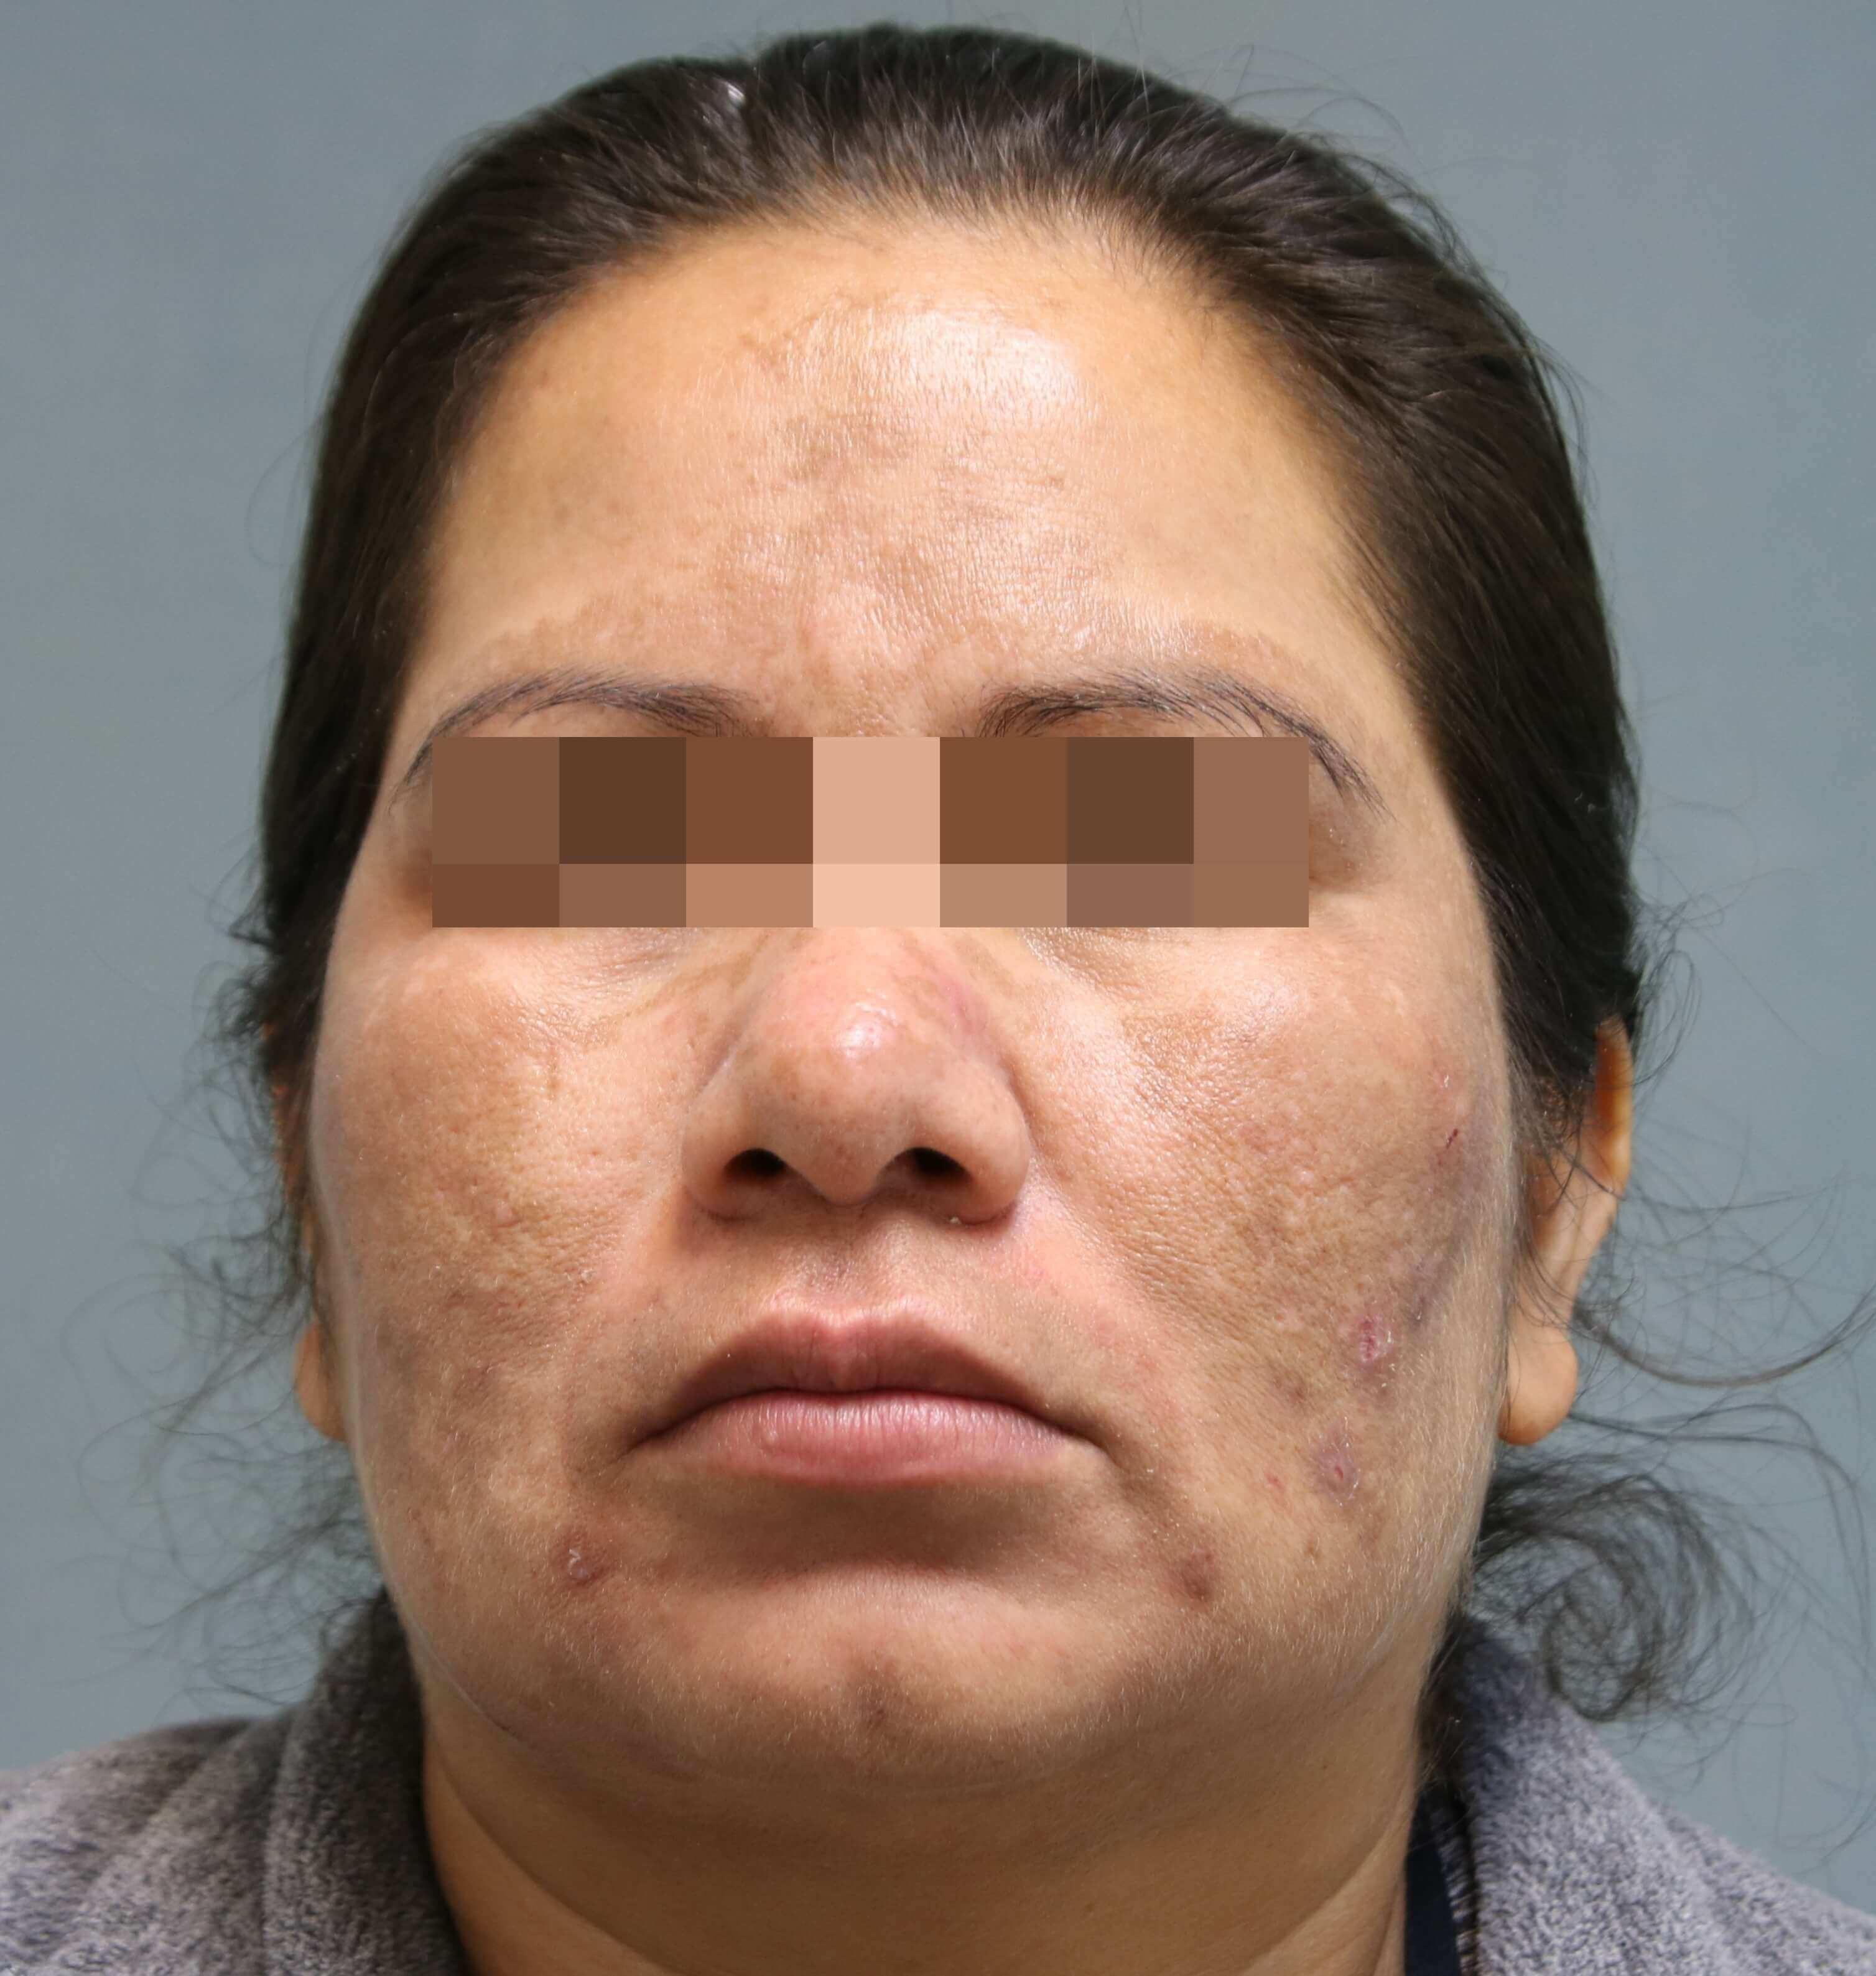 Female Skin Pigmentation After